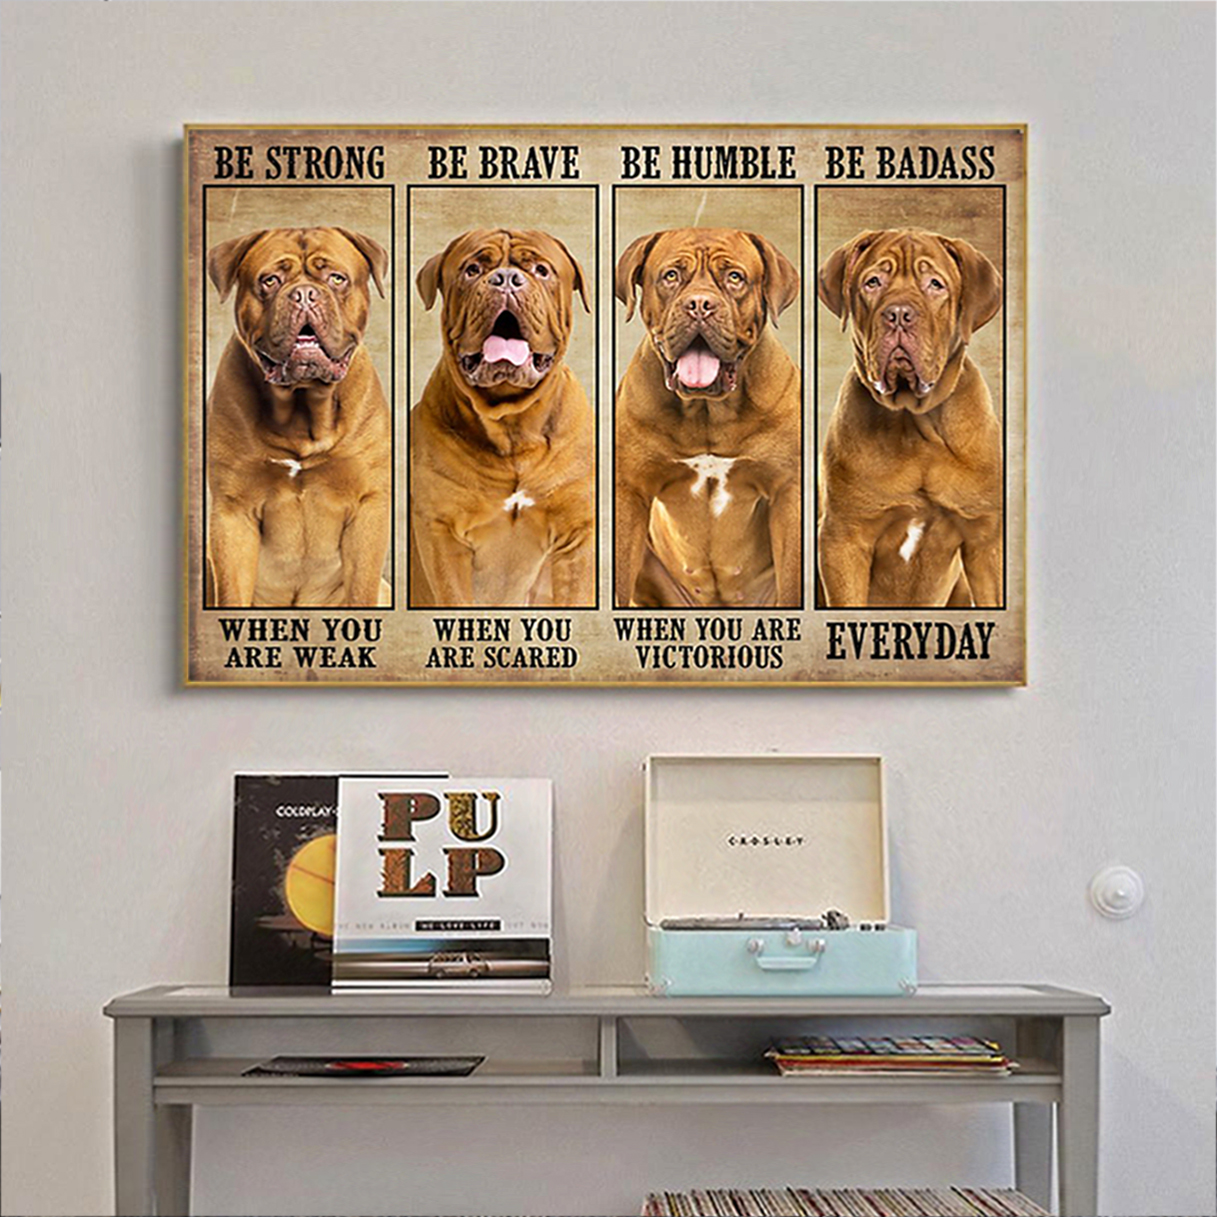 Dogue be strong be brave be humble be badass poster A2